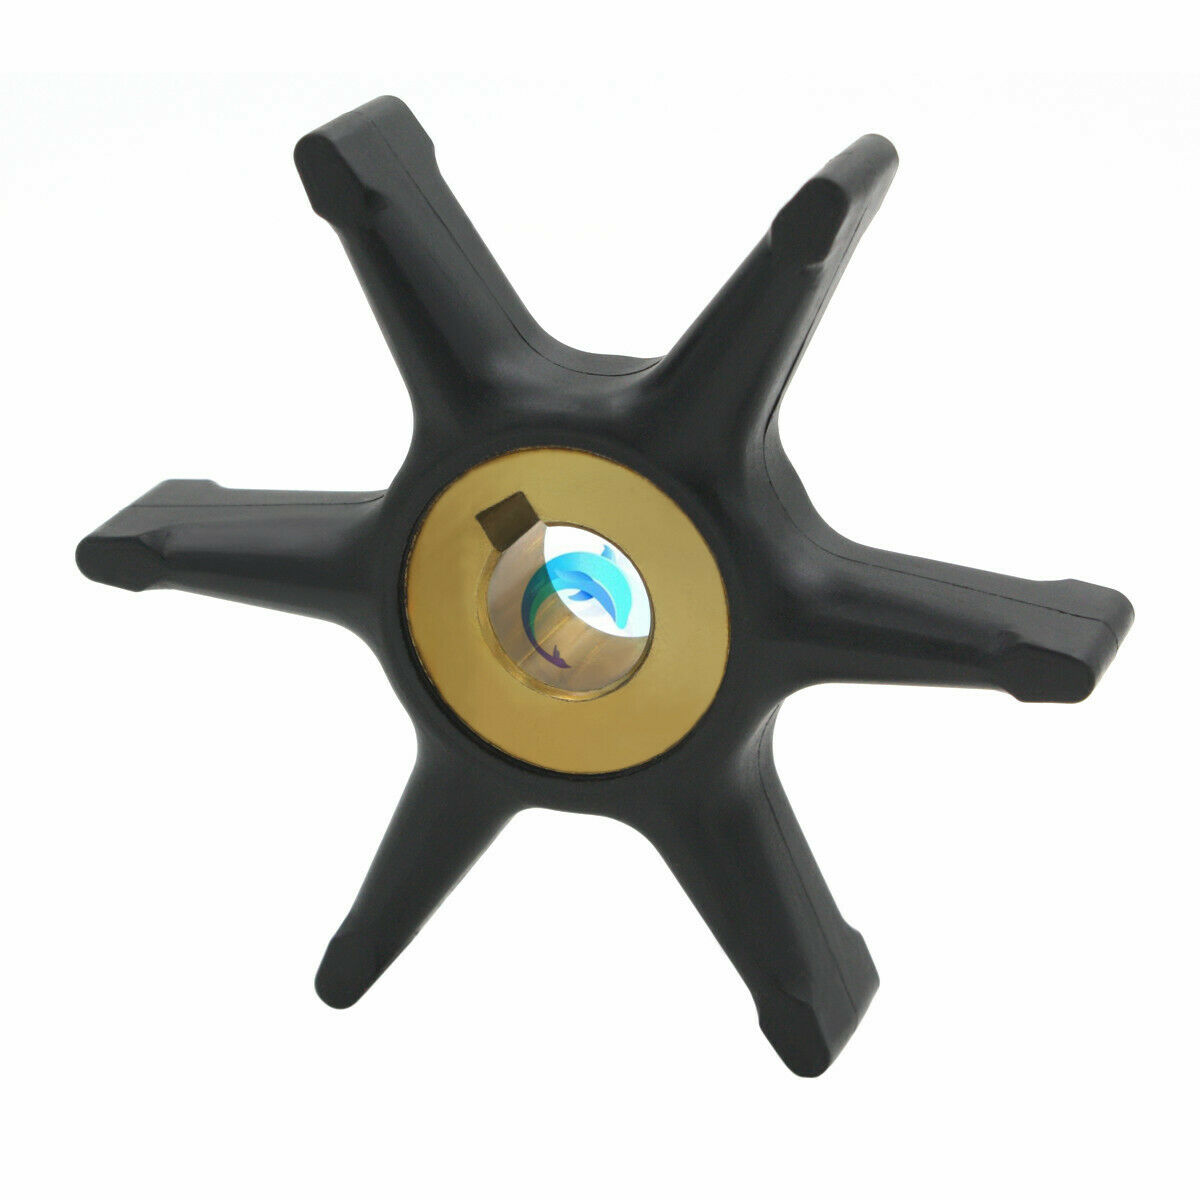 277181 434424 18-3001 Impeller for Johnson Evinrude 3HP 4HP 5HP 5.5HP 6HP RO